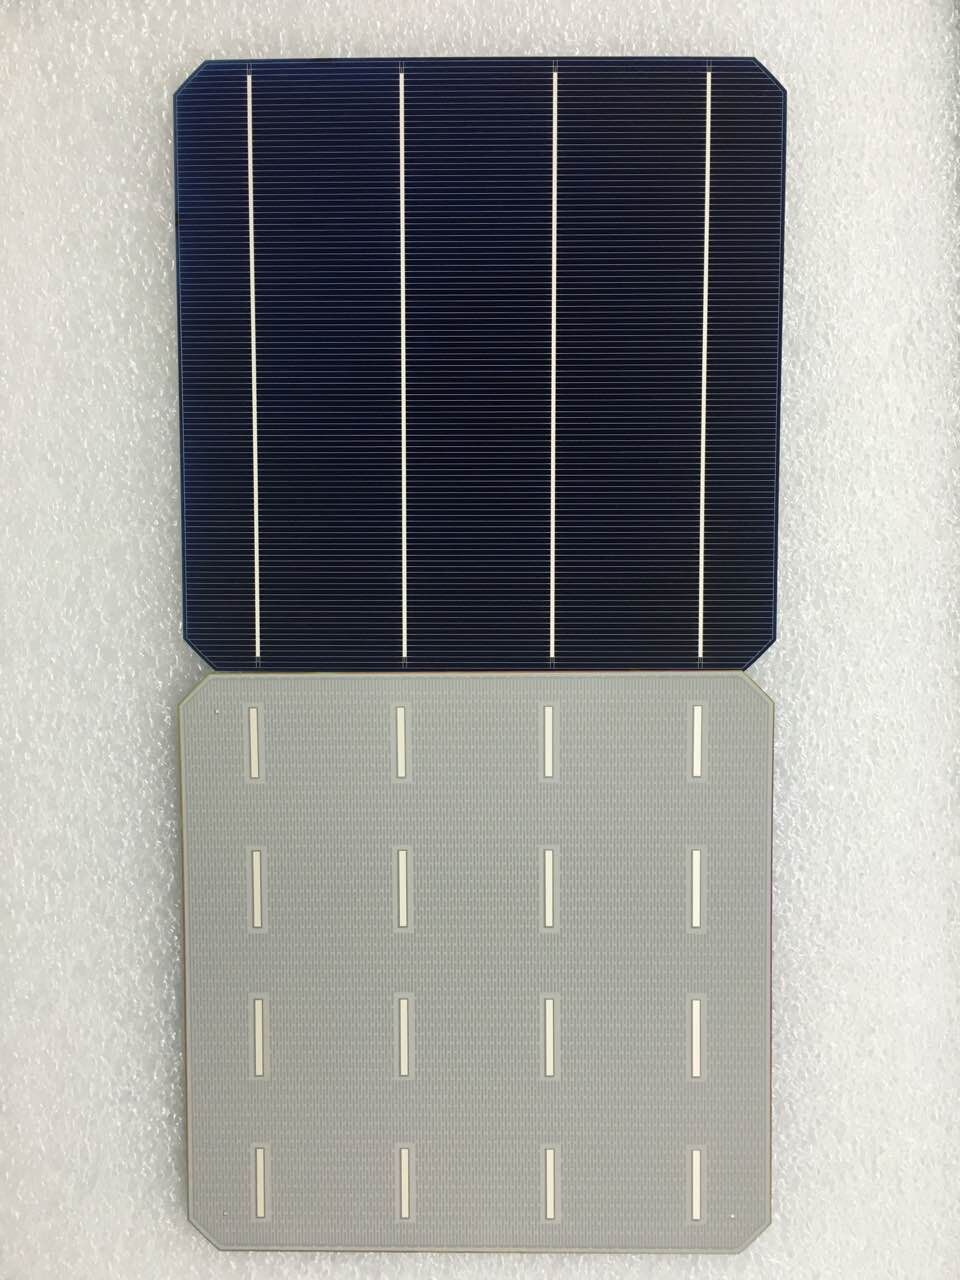 100Pcs 5 03W 20 6 Effciency Grade A 156 156MM Photovoltaic Mono Monocrystalline Silicon Solar Cell